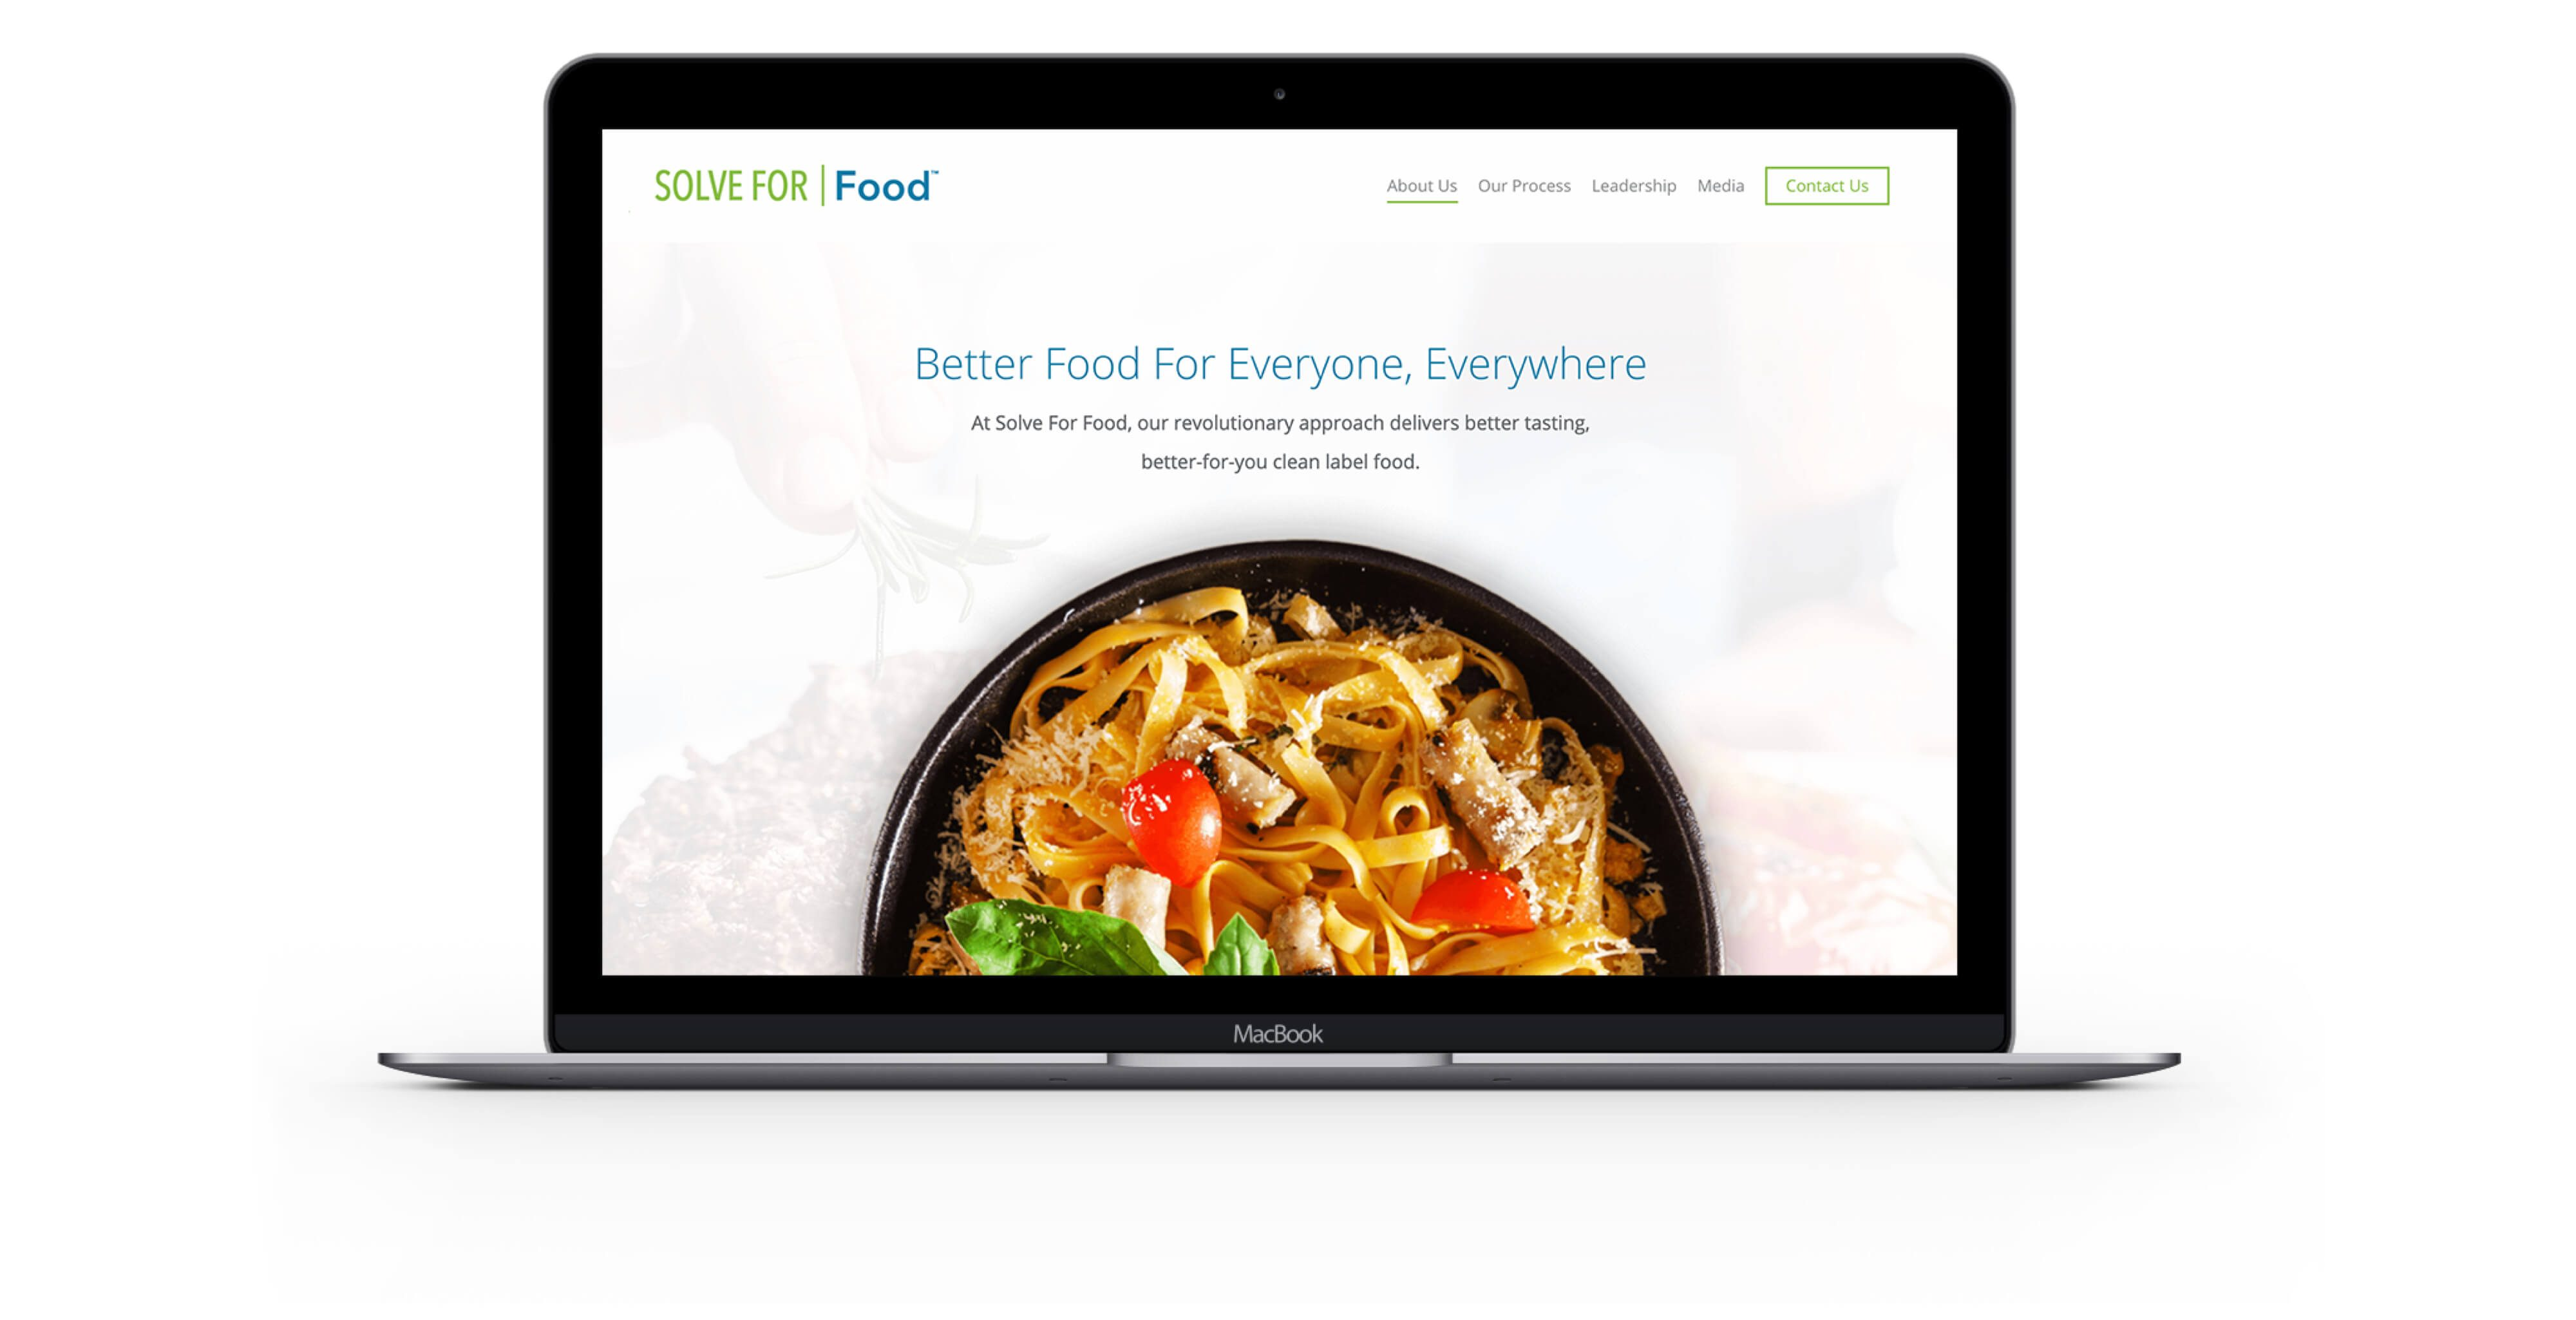 a mock up of the solve for food website on a macbook pro